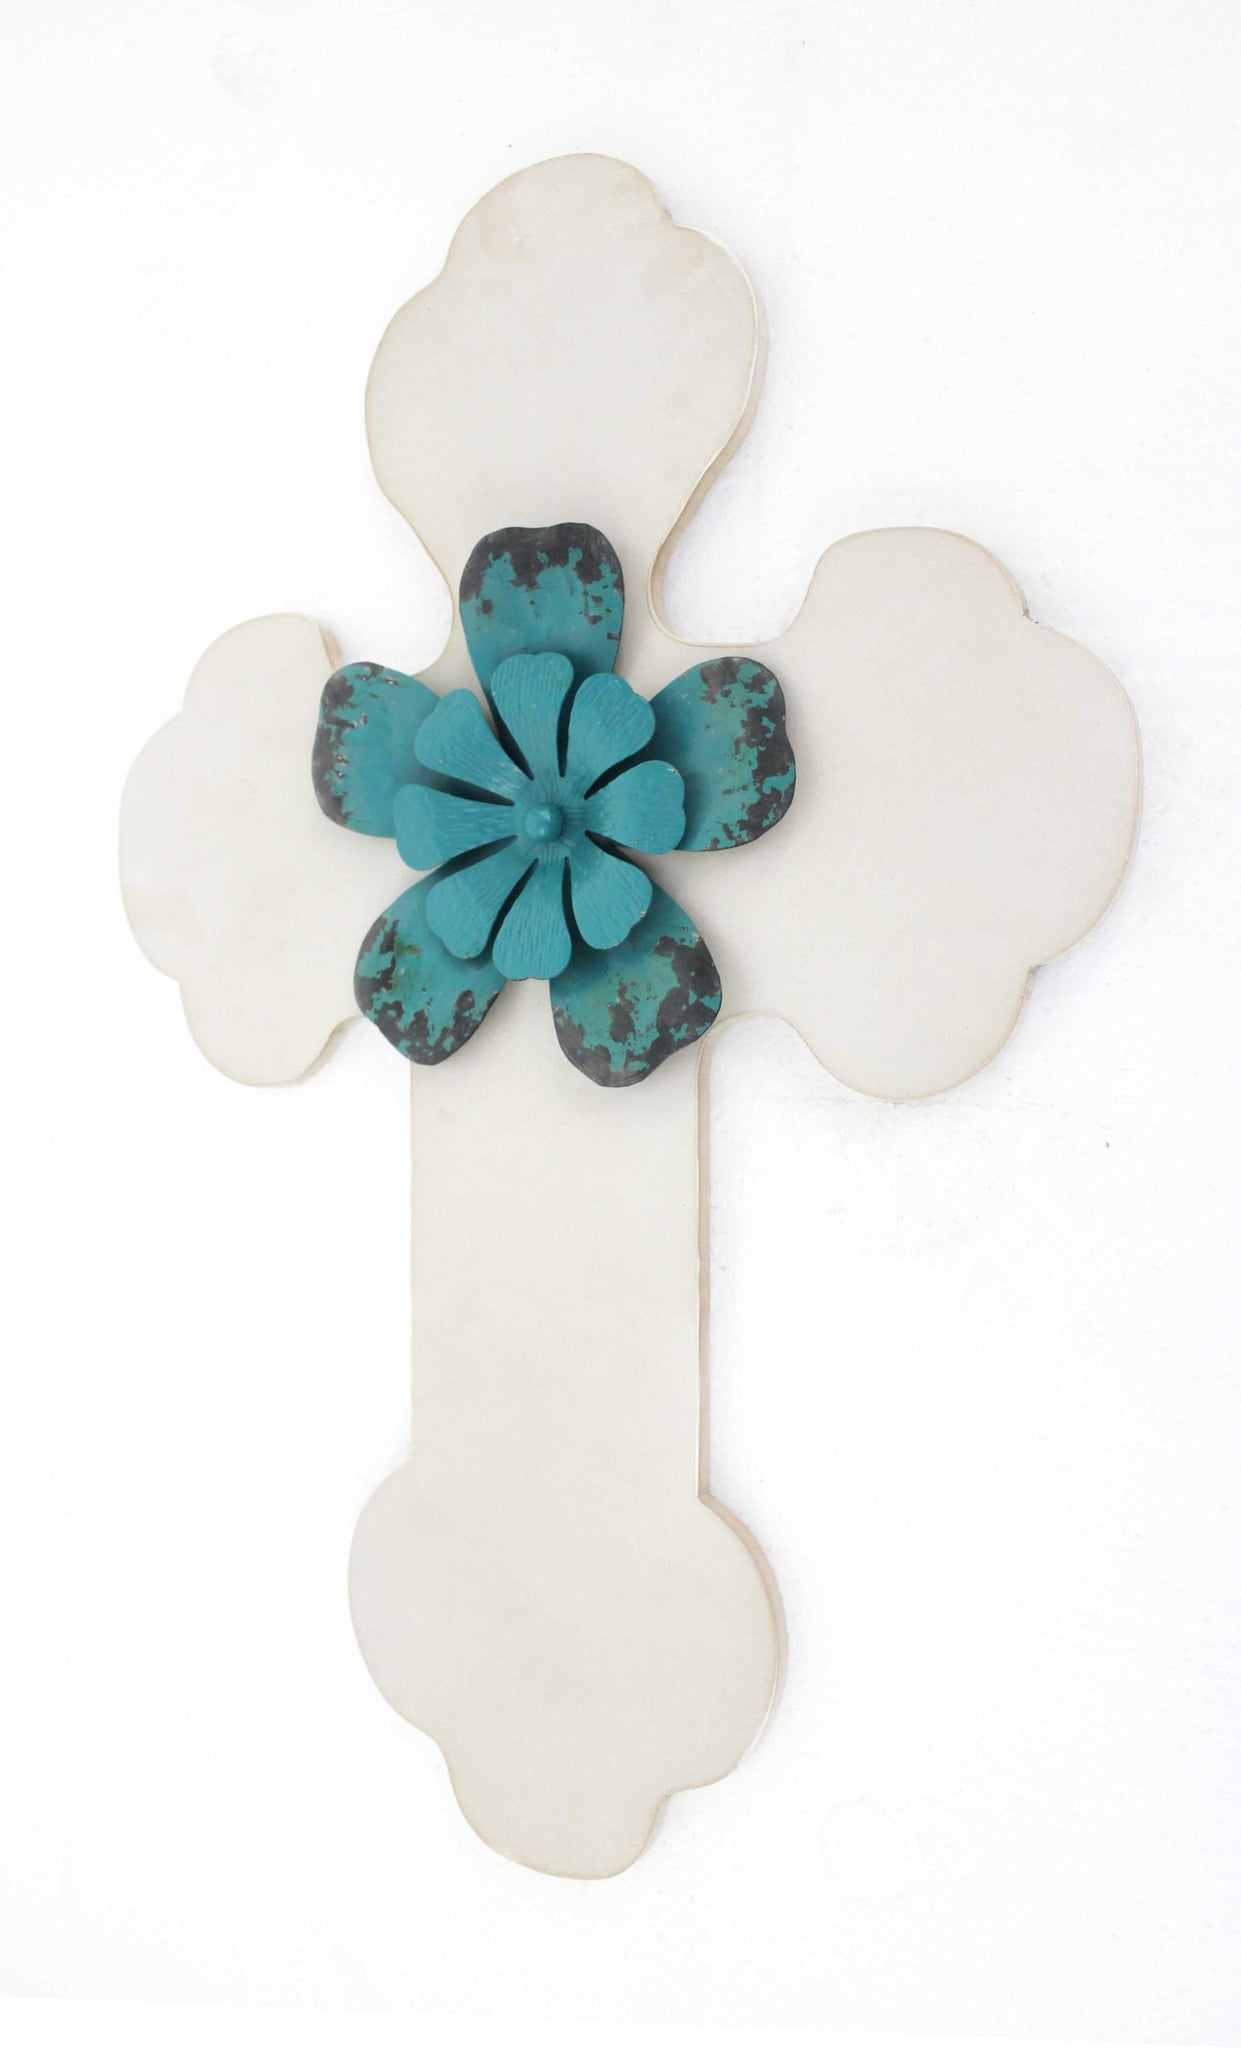 "23.75"" X 15.75"" White Rustic Cross Wooden Wall Decor"